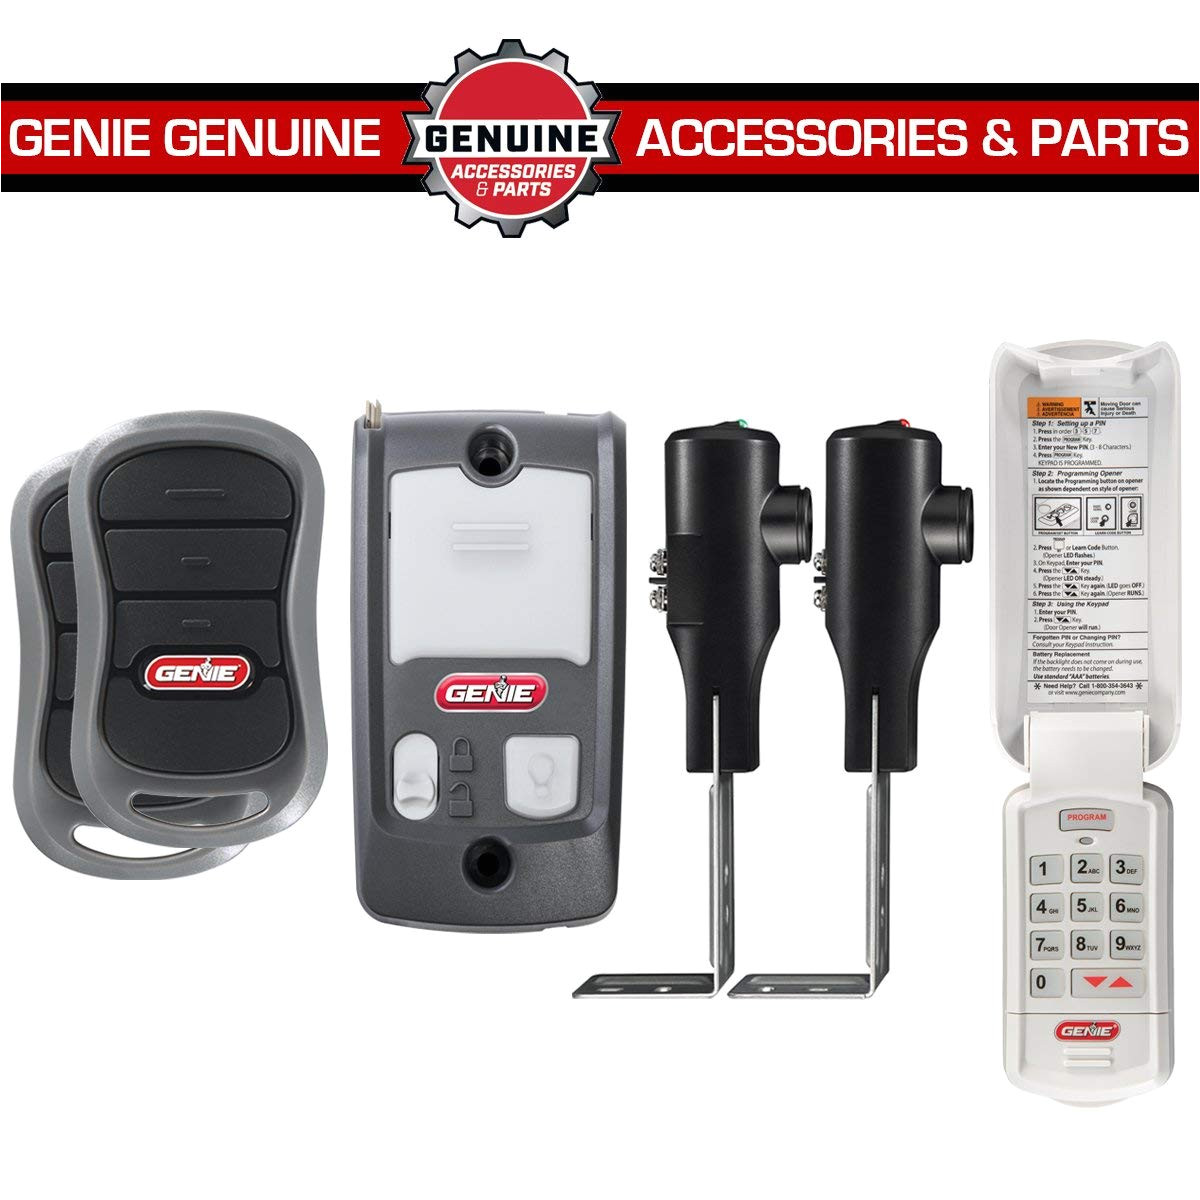 genie chainmax 1000 garage door opener 3 4 hpc dc chain drive opener with two 3 button pre programmed remotes wall console wireless keypad and